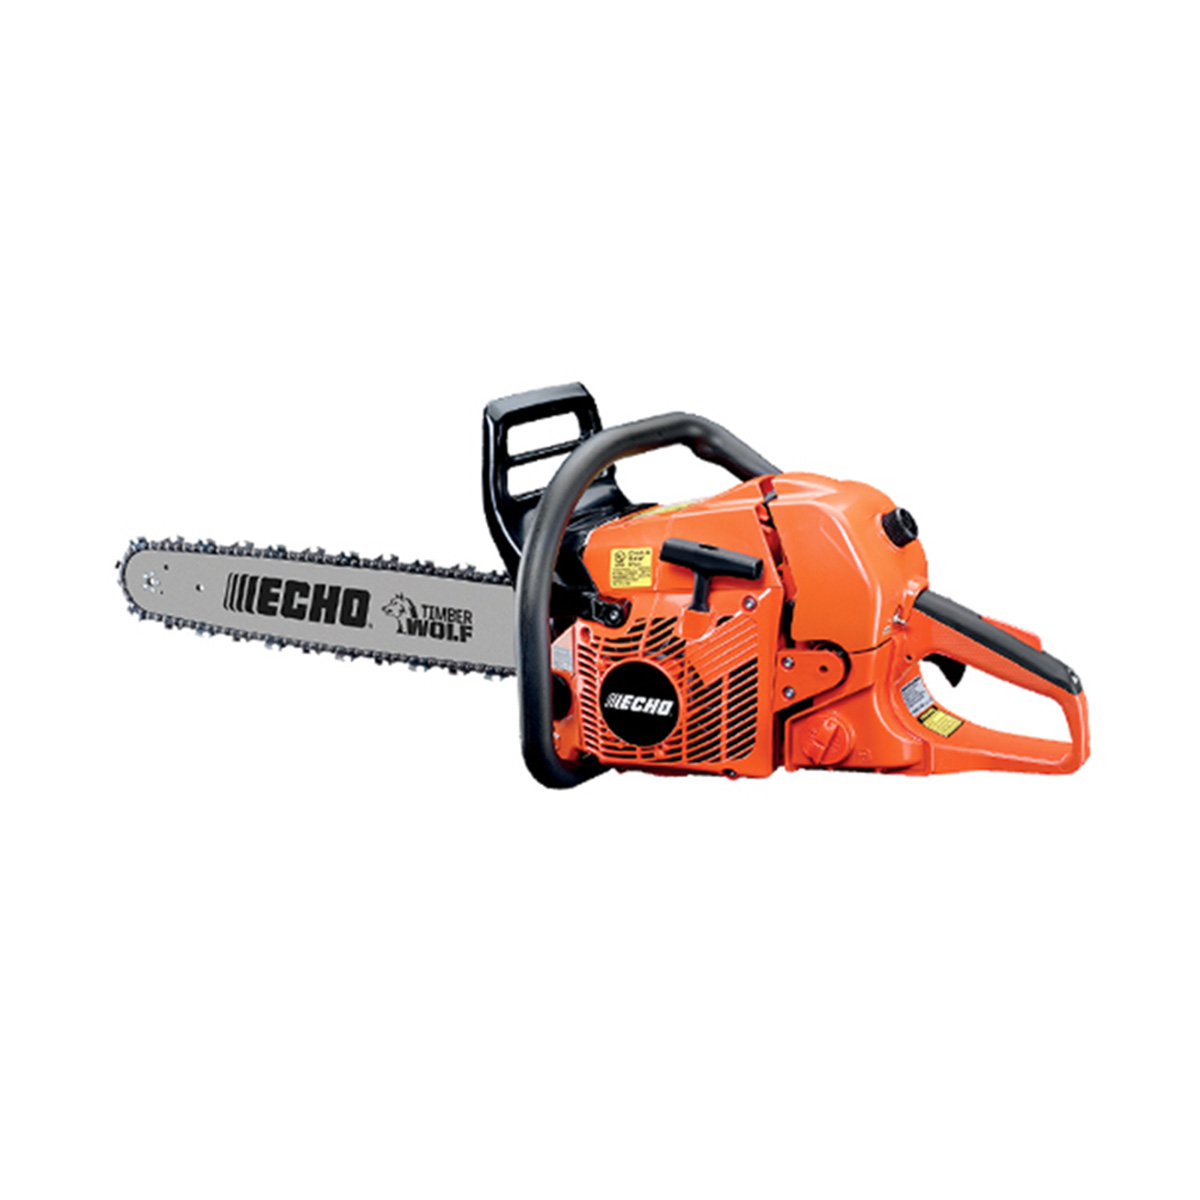 CS-590-20 ECHO Chainsaw with 20